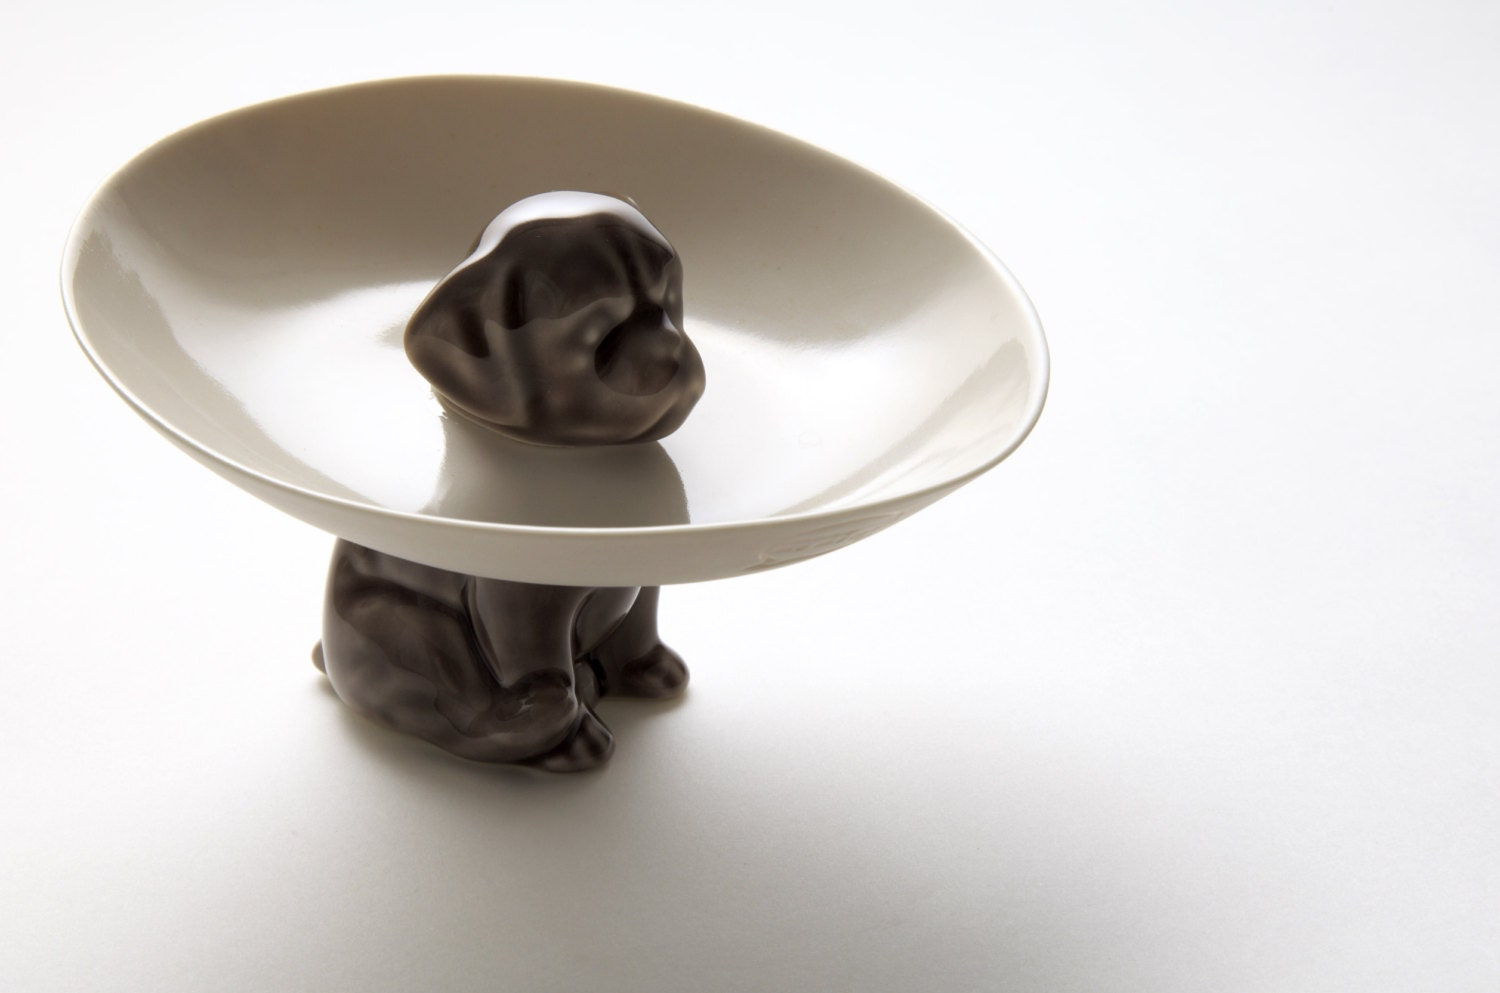 Uncategorized Cute Dog Bowl the dog bowl porcelain held up by a cute dog